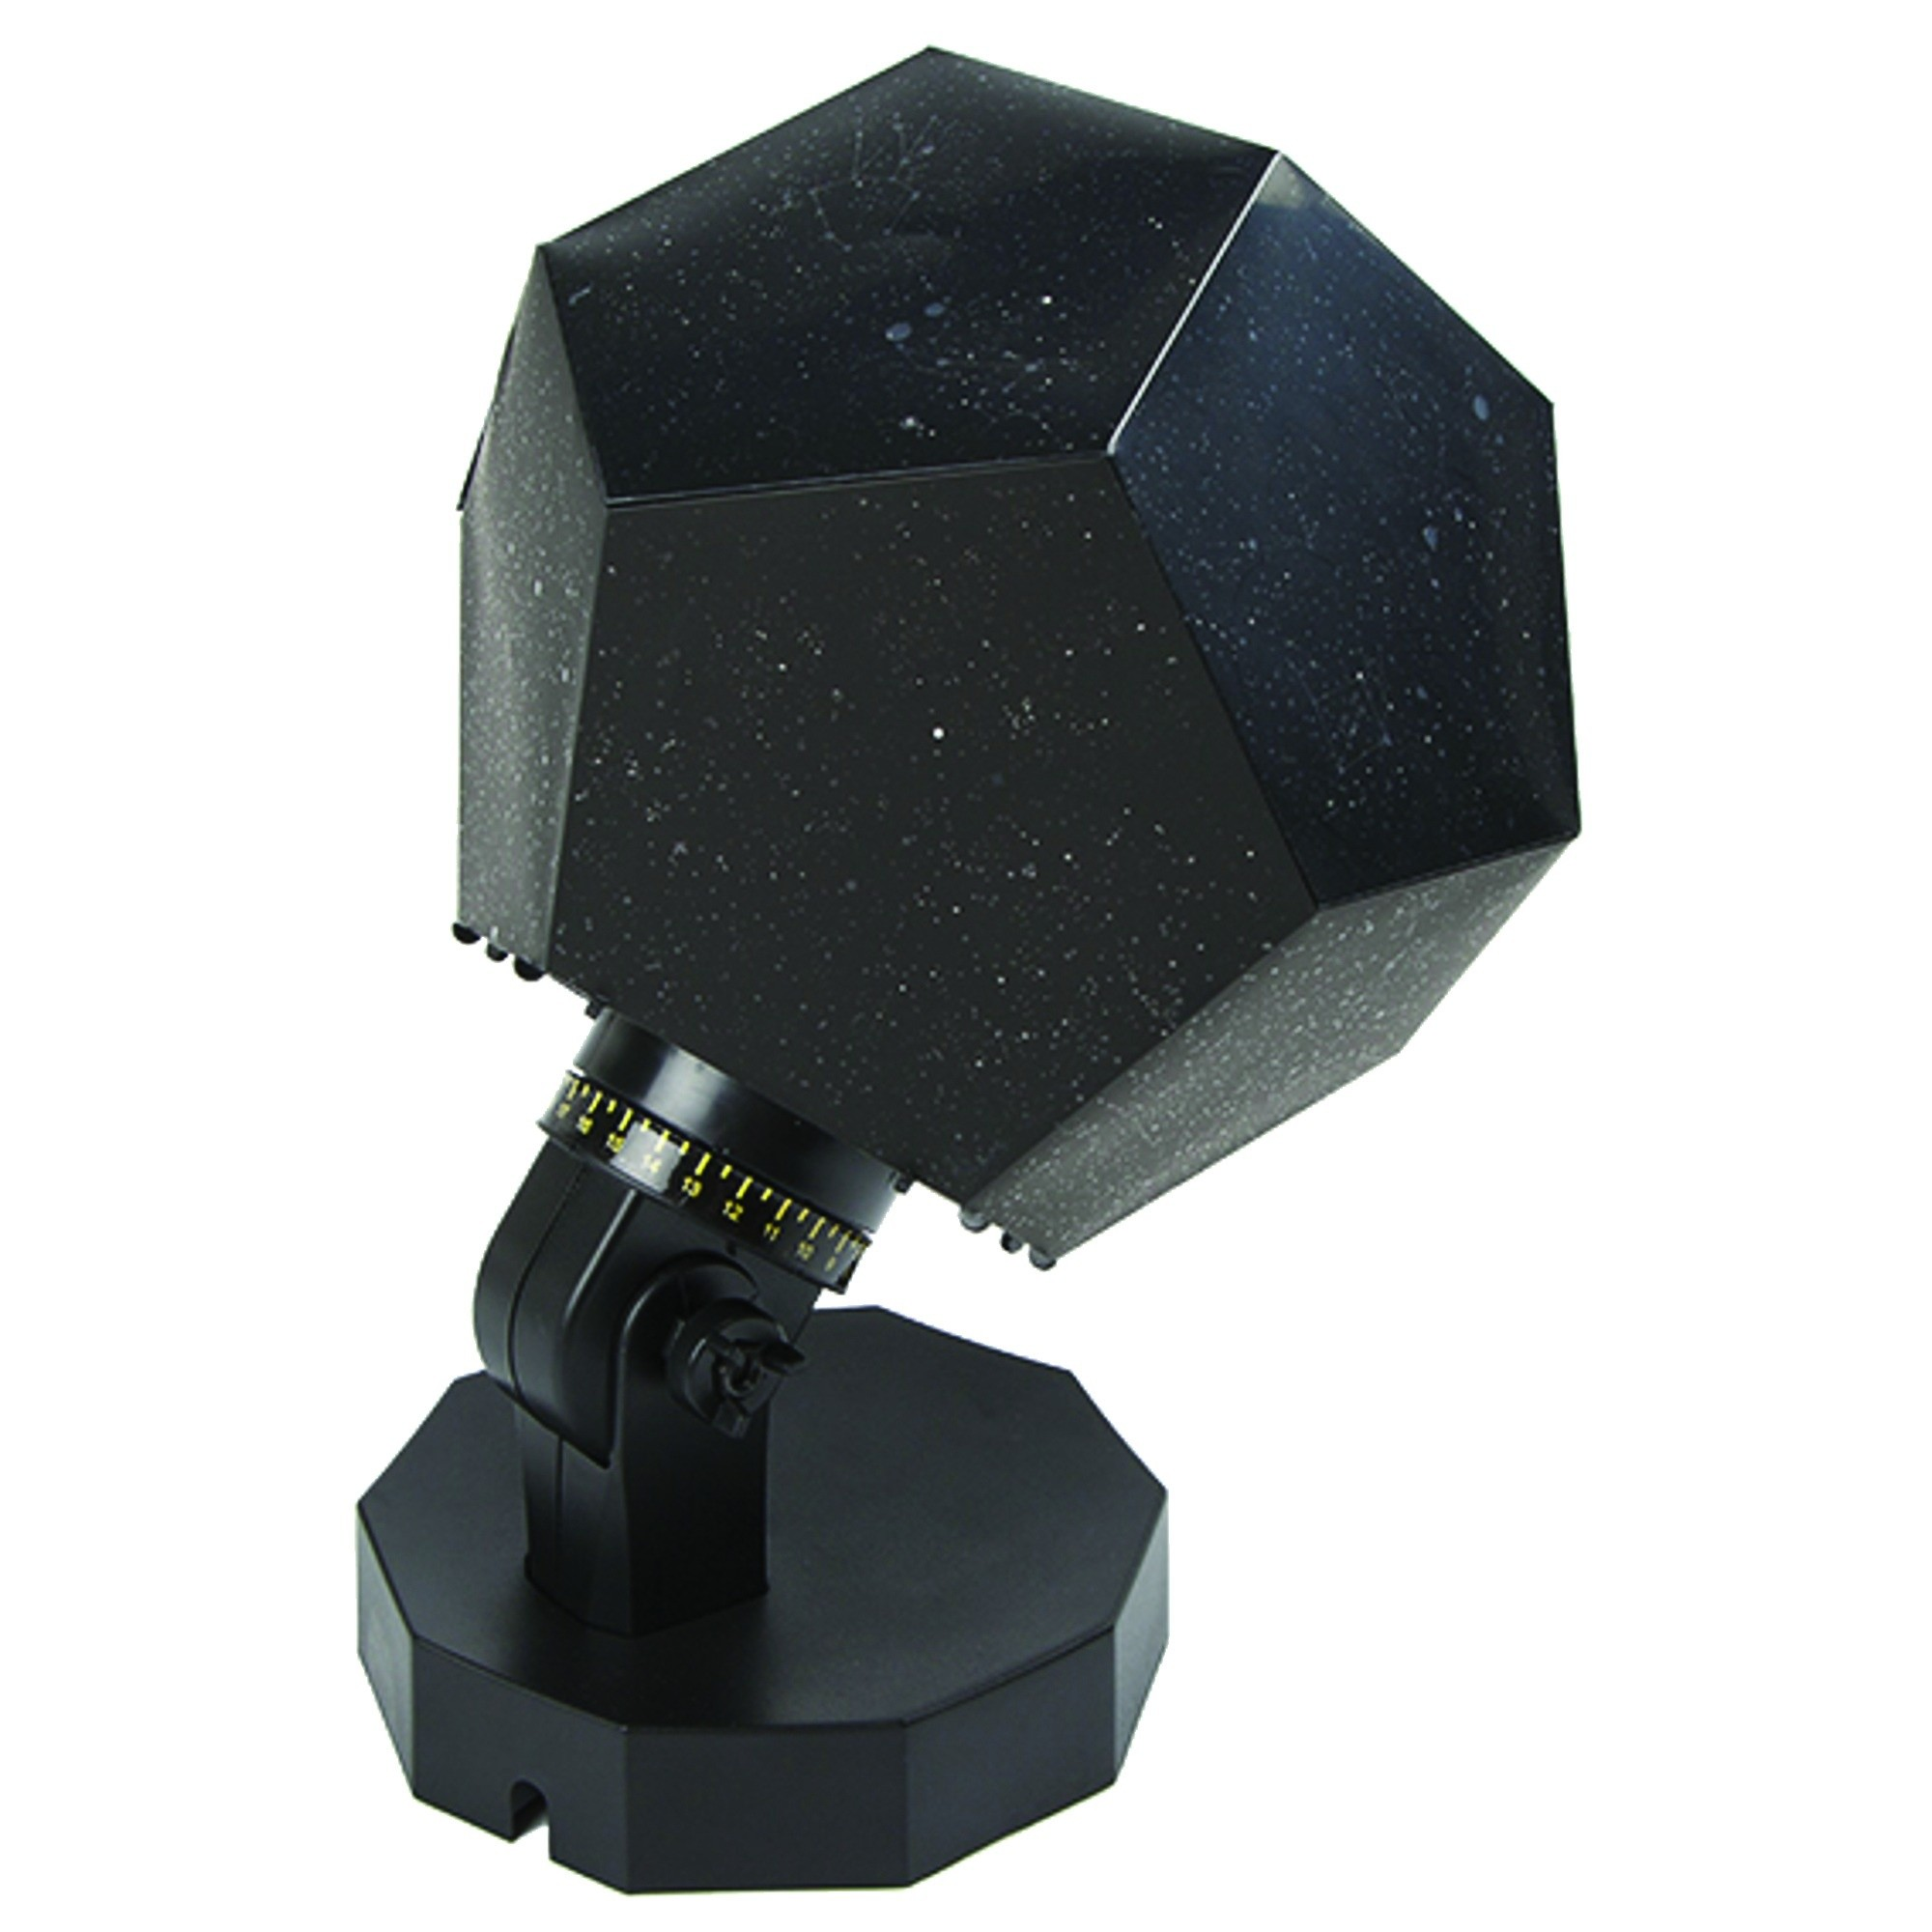 Star map projector lamp - Science Museum Star Constellations Projector Night Hendecahedron Lamp